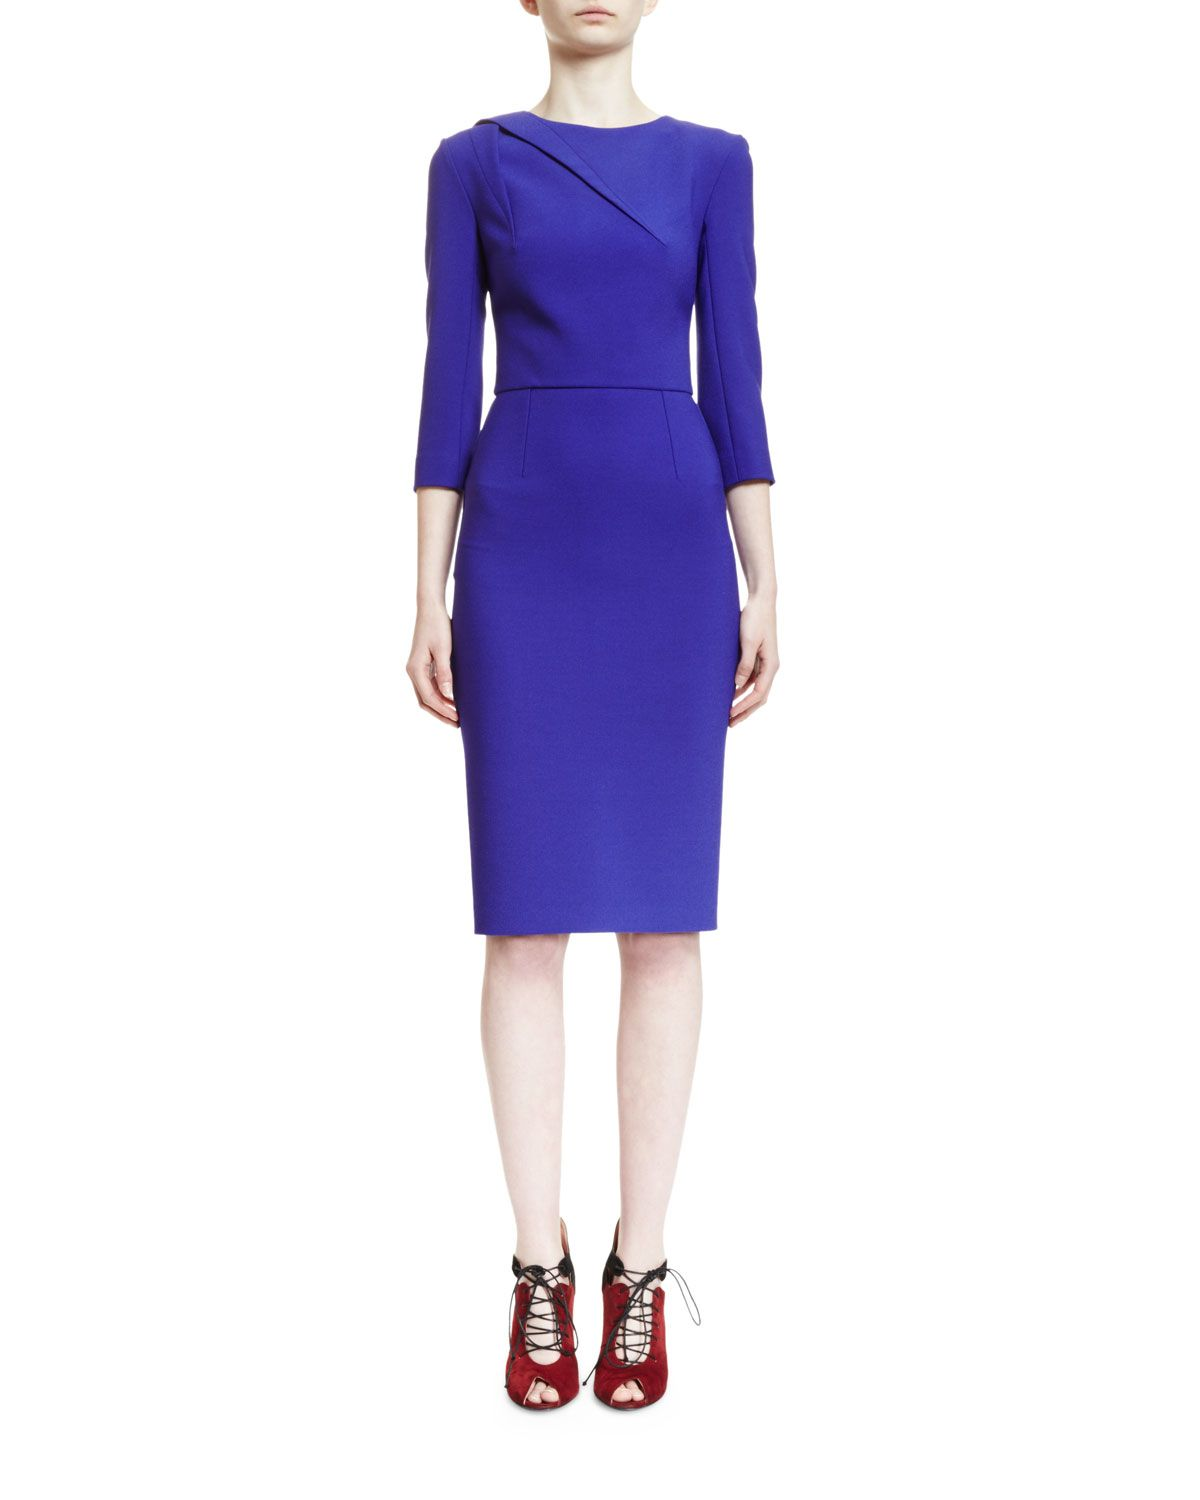 Hisley 3 4 Sleeve Sheath Dress Royal Purple Women S Size